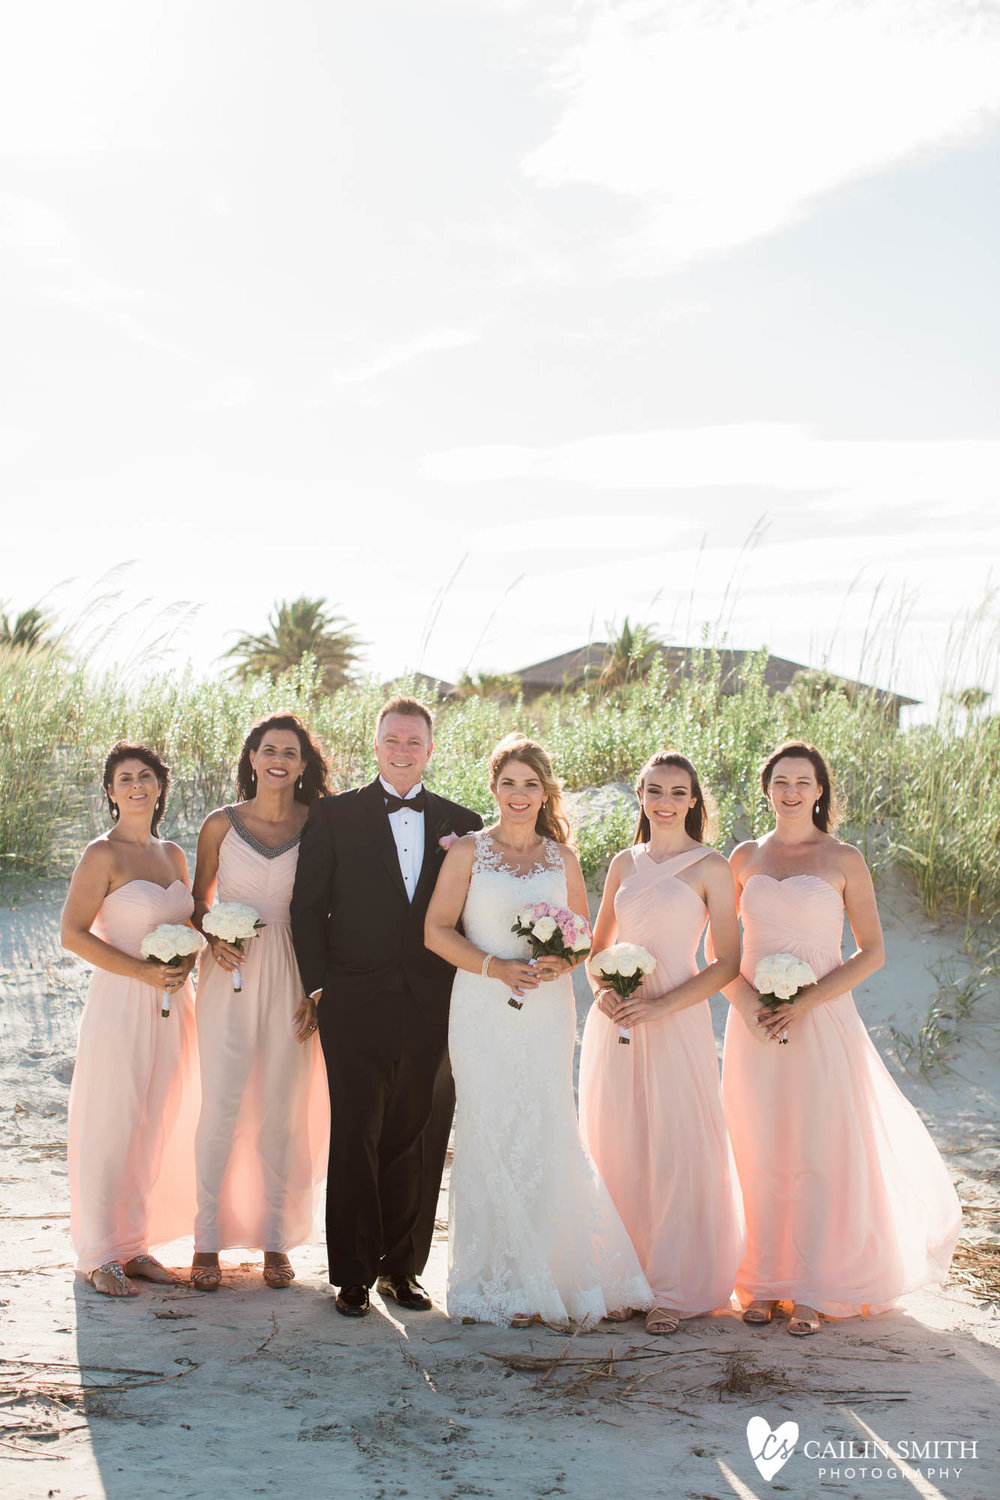 Kalina_Andy_Jekyll_Island_Westin_Hotel_Wedding_Photography_0047.jpg